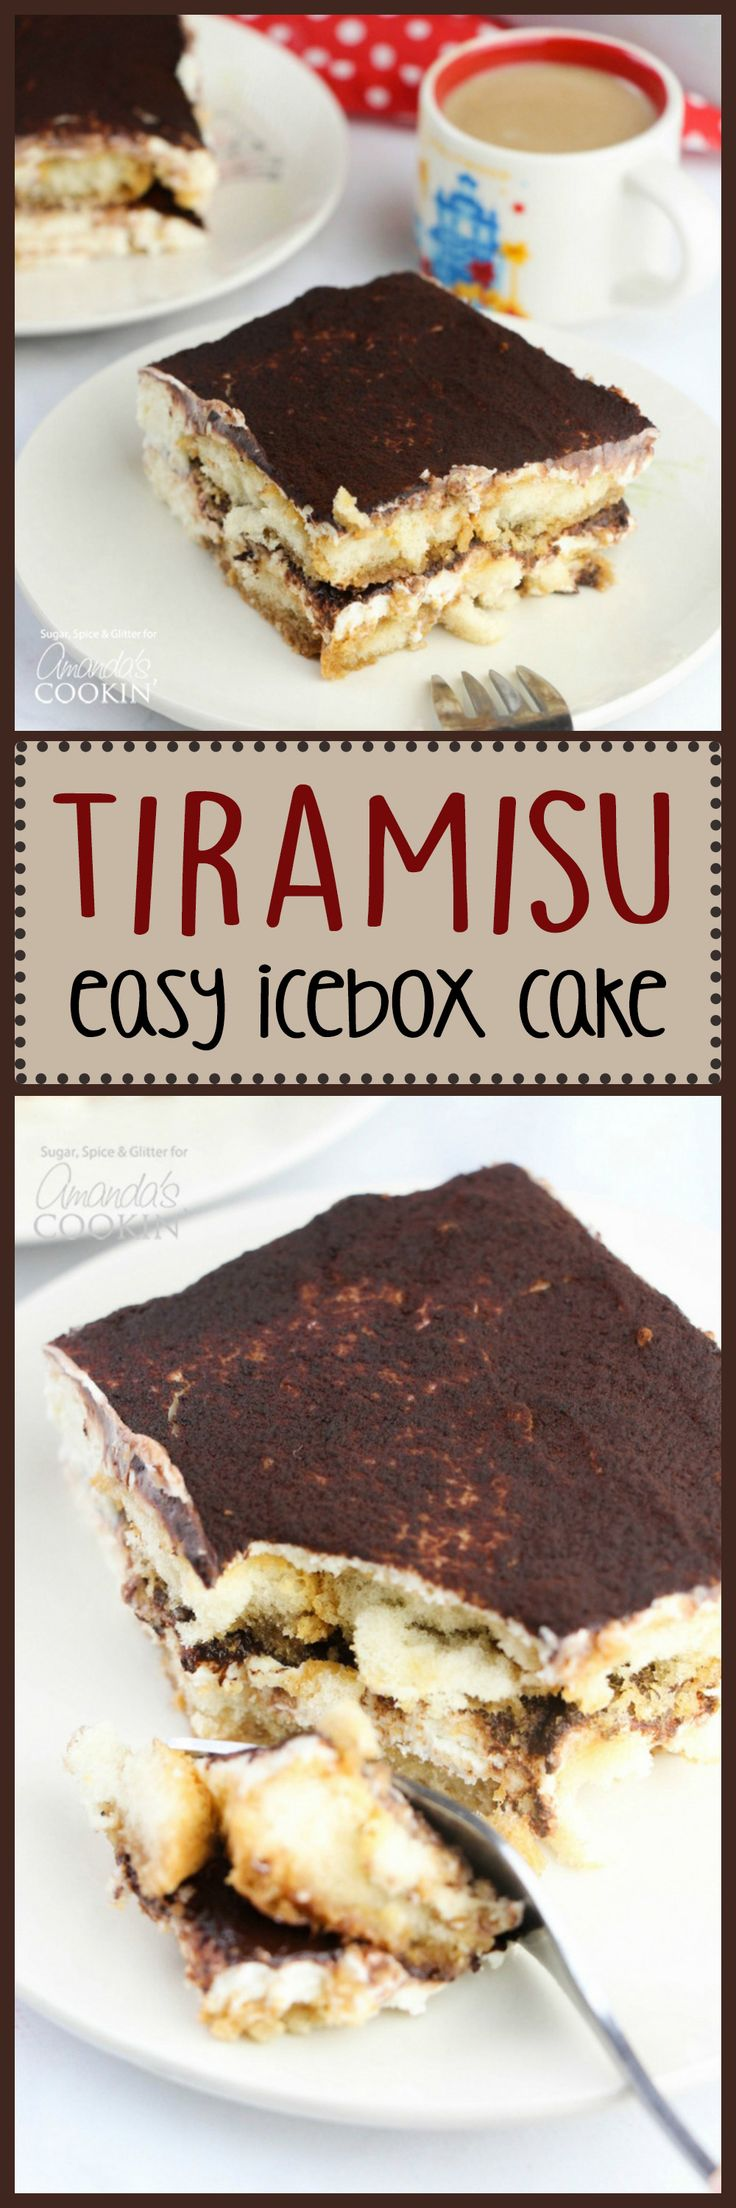 This no-bake Tiramisu Icebox Cake comes together in minutes and is the perfect dessert with a cup of coffee or after a traditional Italian meal.